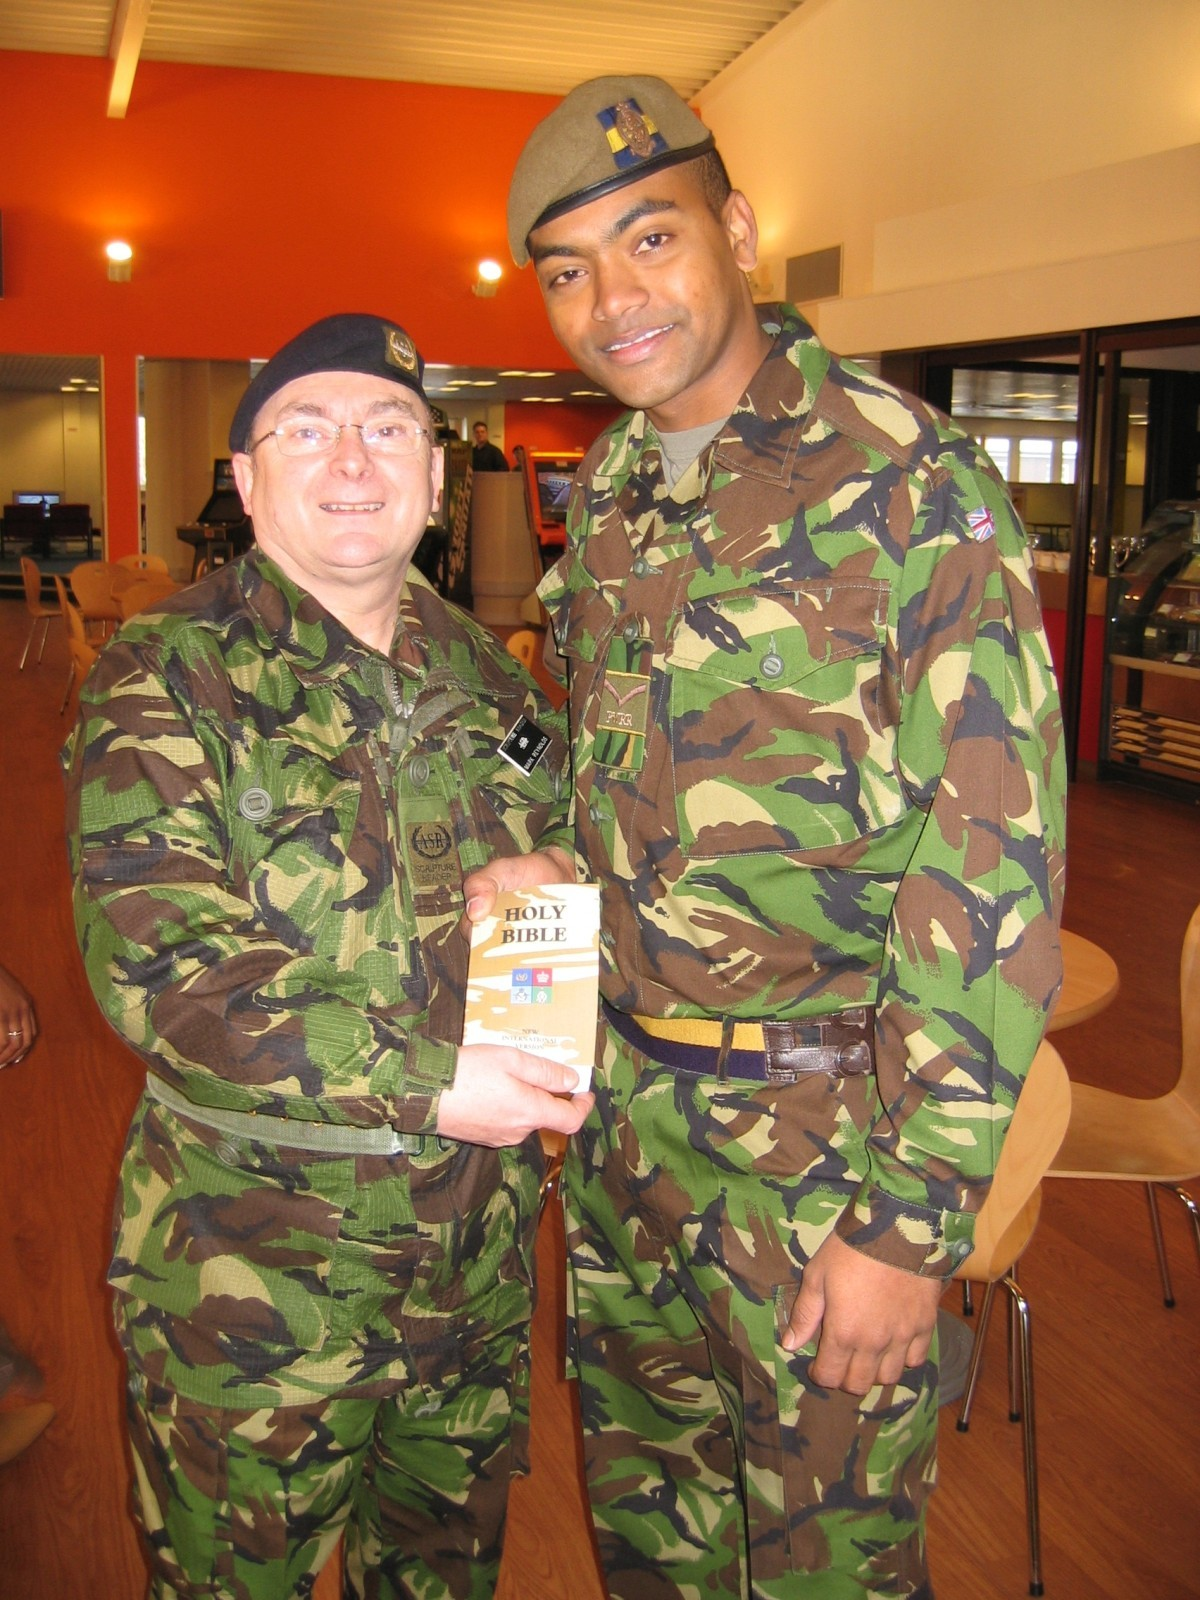 Johnson Beharry VC receiving a replacement NIV Bible (He lost his original in battle)